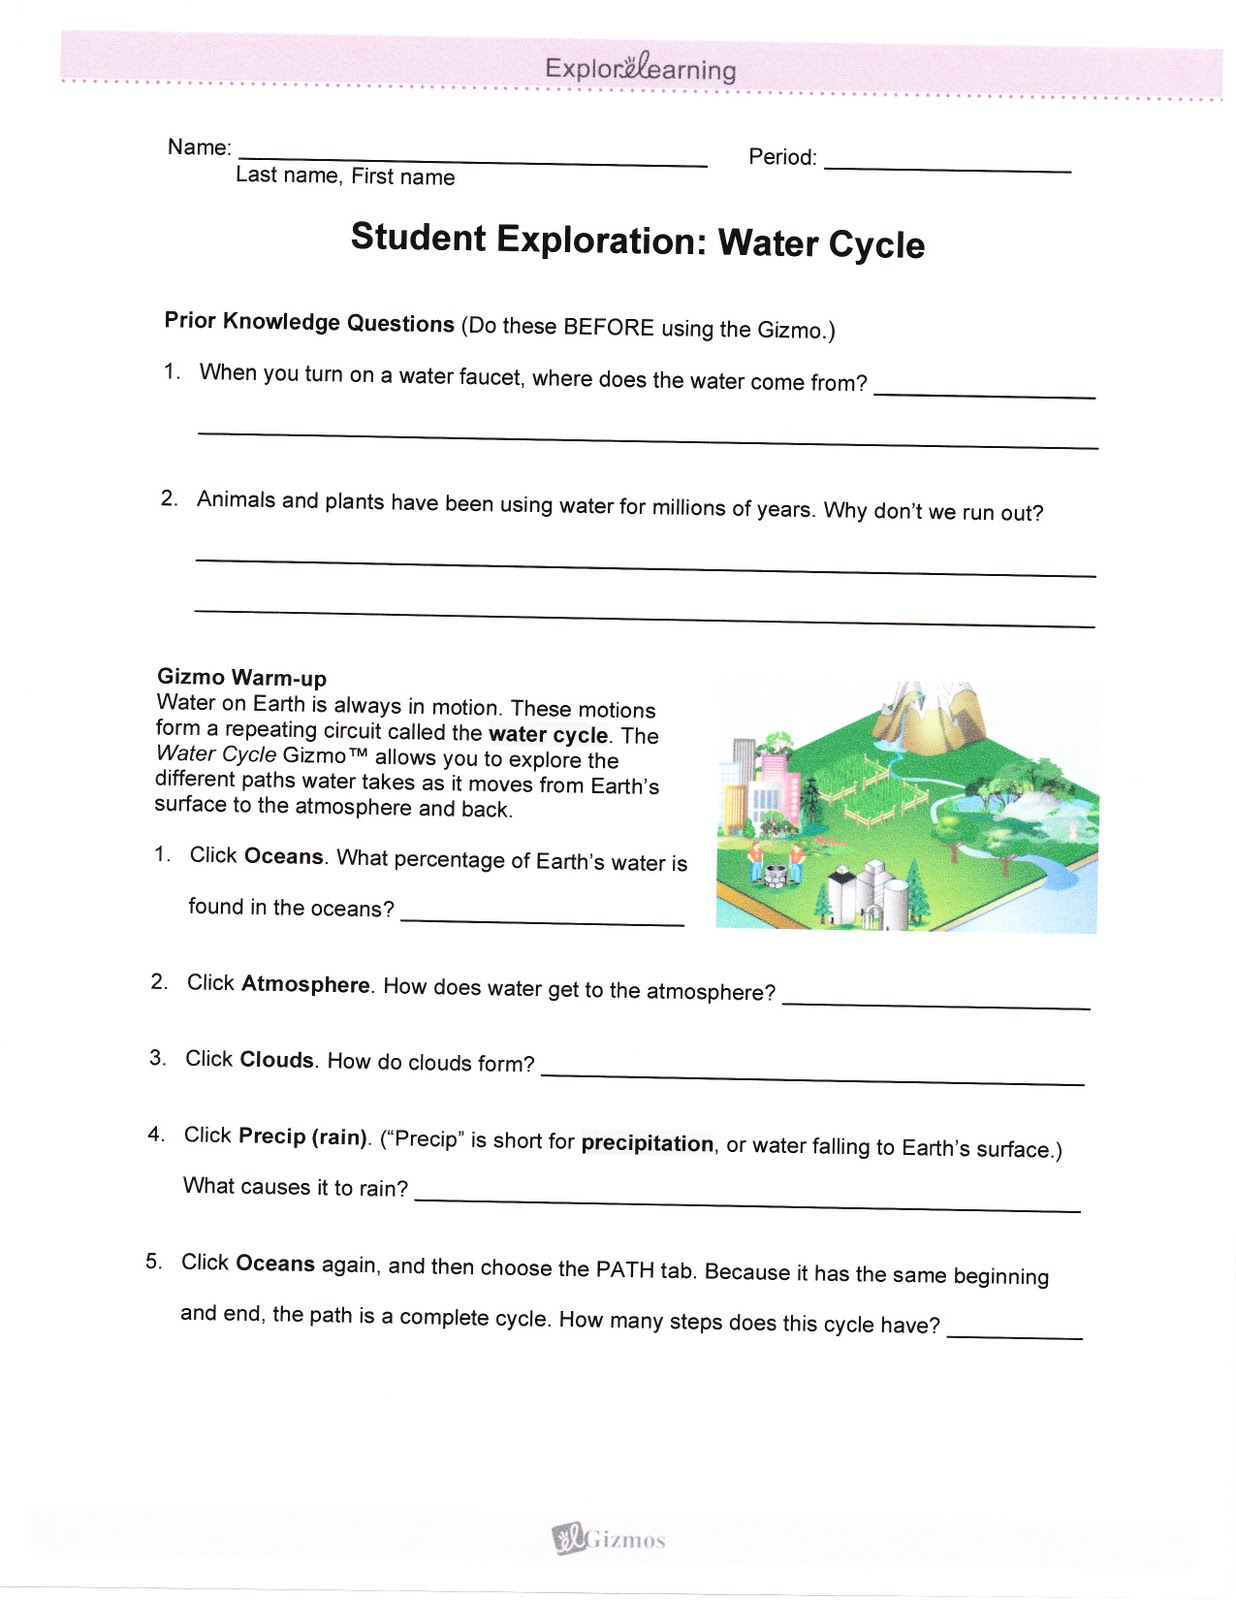 water cycle answers water printable water cycle water water cycle answers water printable water cycle water cycle water cycle process the water cycle process steps and many others about the water